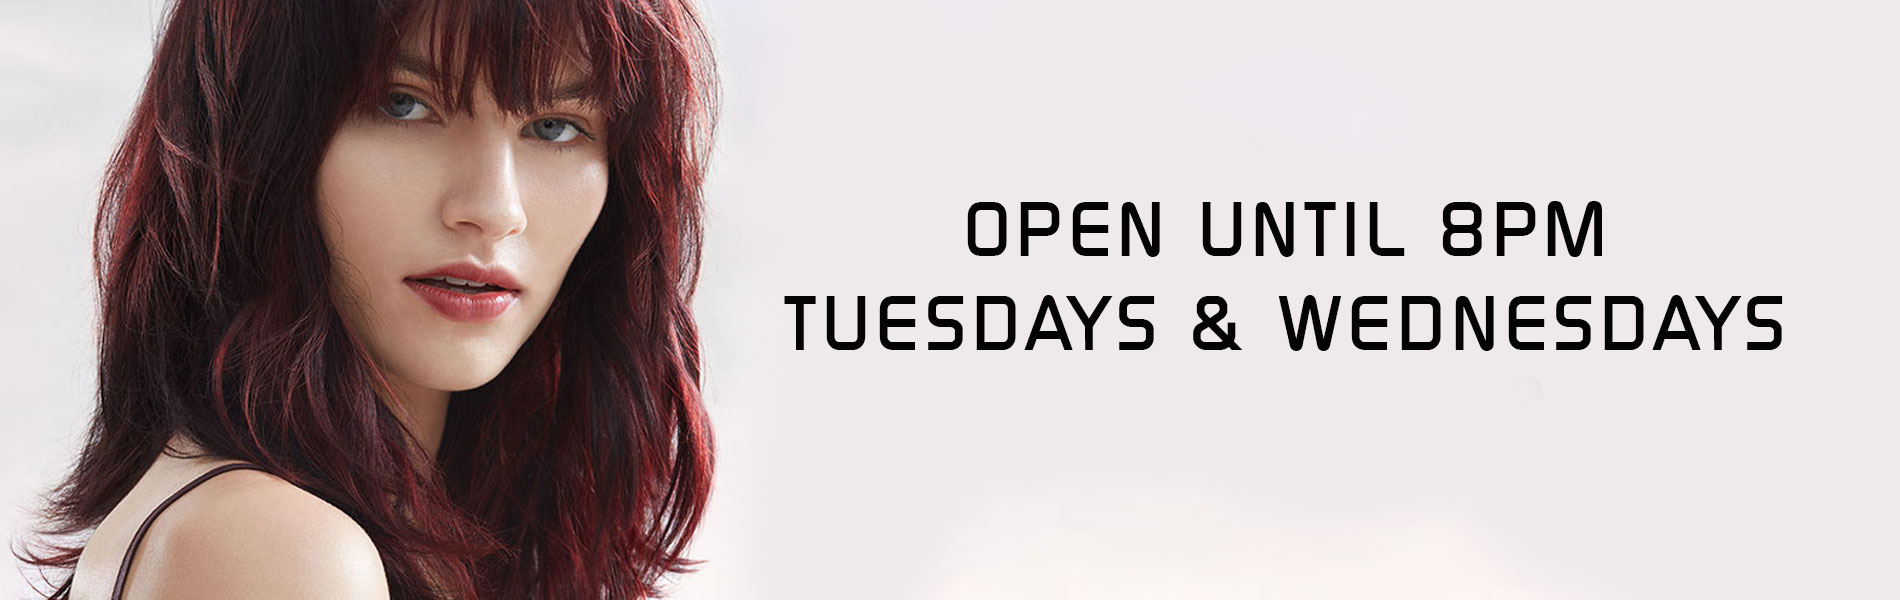 Open until 8pm Tuesdays and Wednesdays best hair salon in Uxbridge - Kevin Joseph Hairdressing